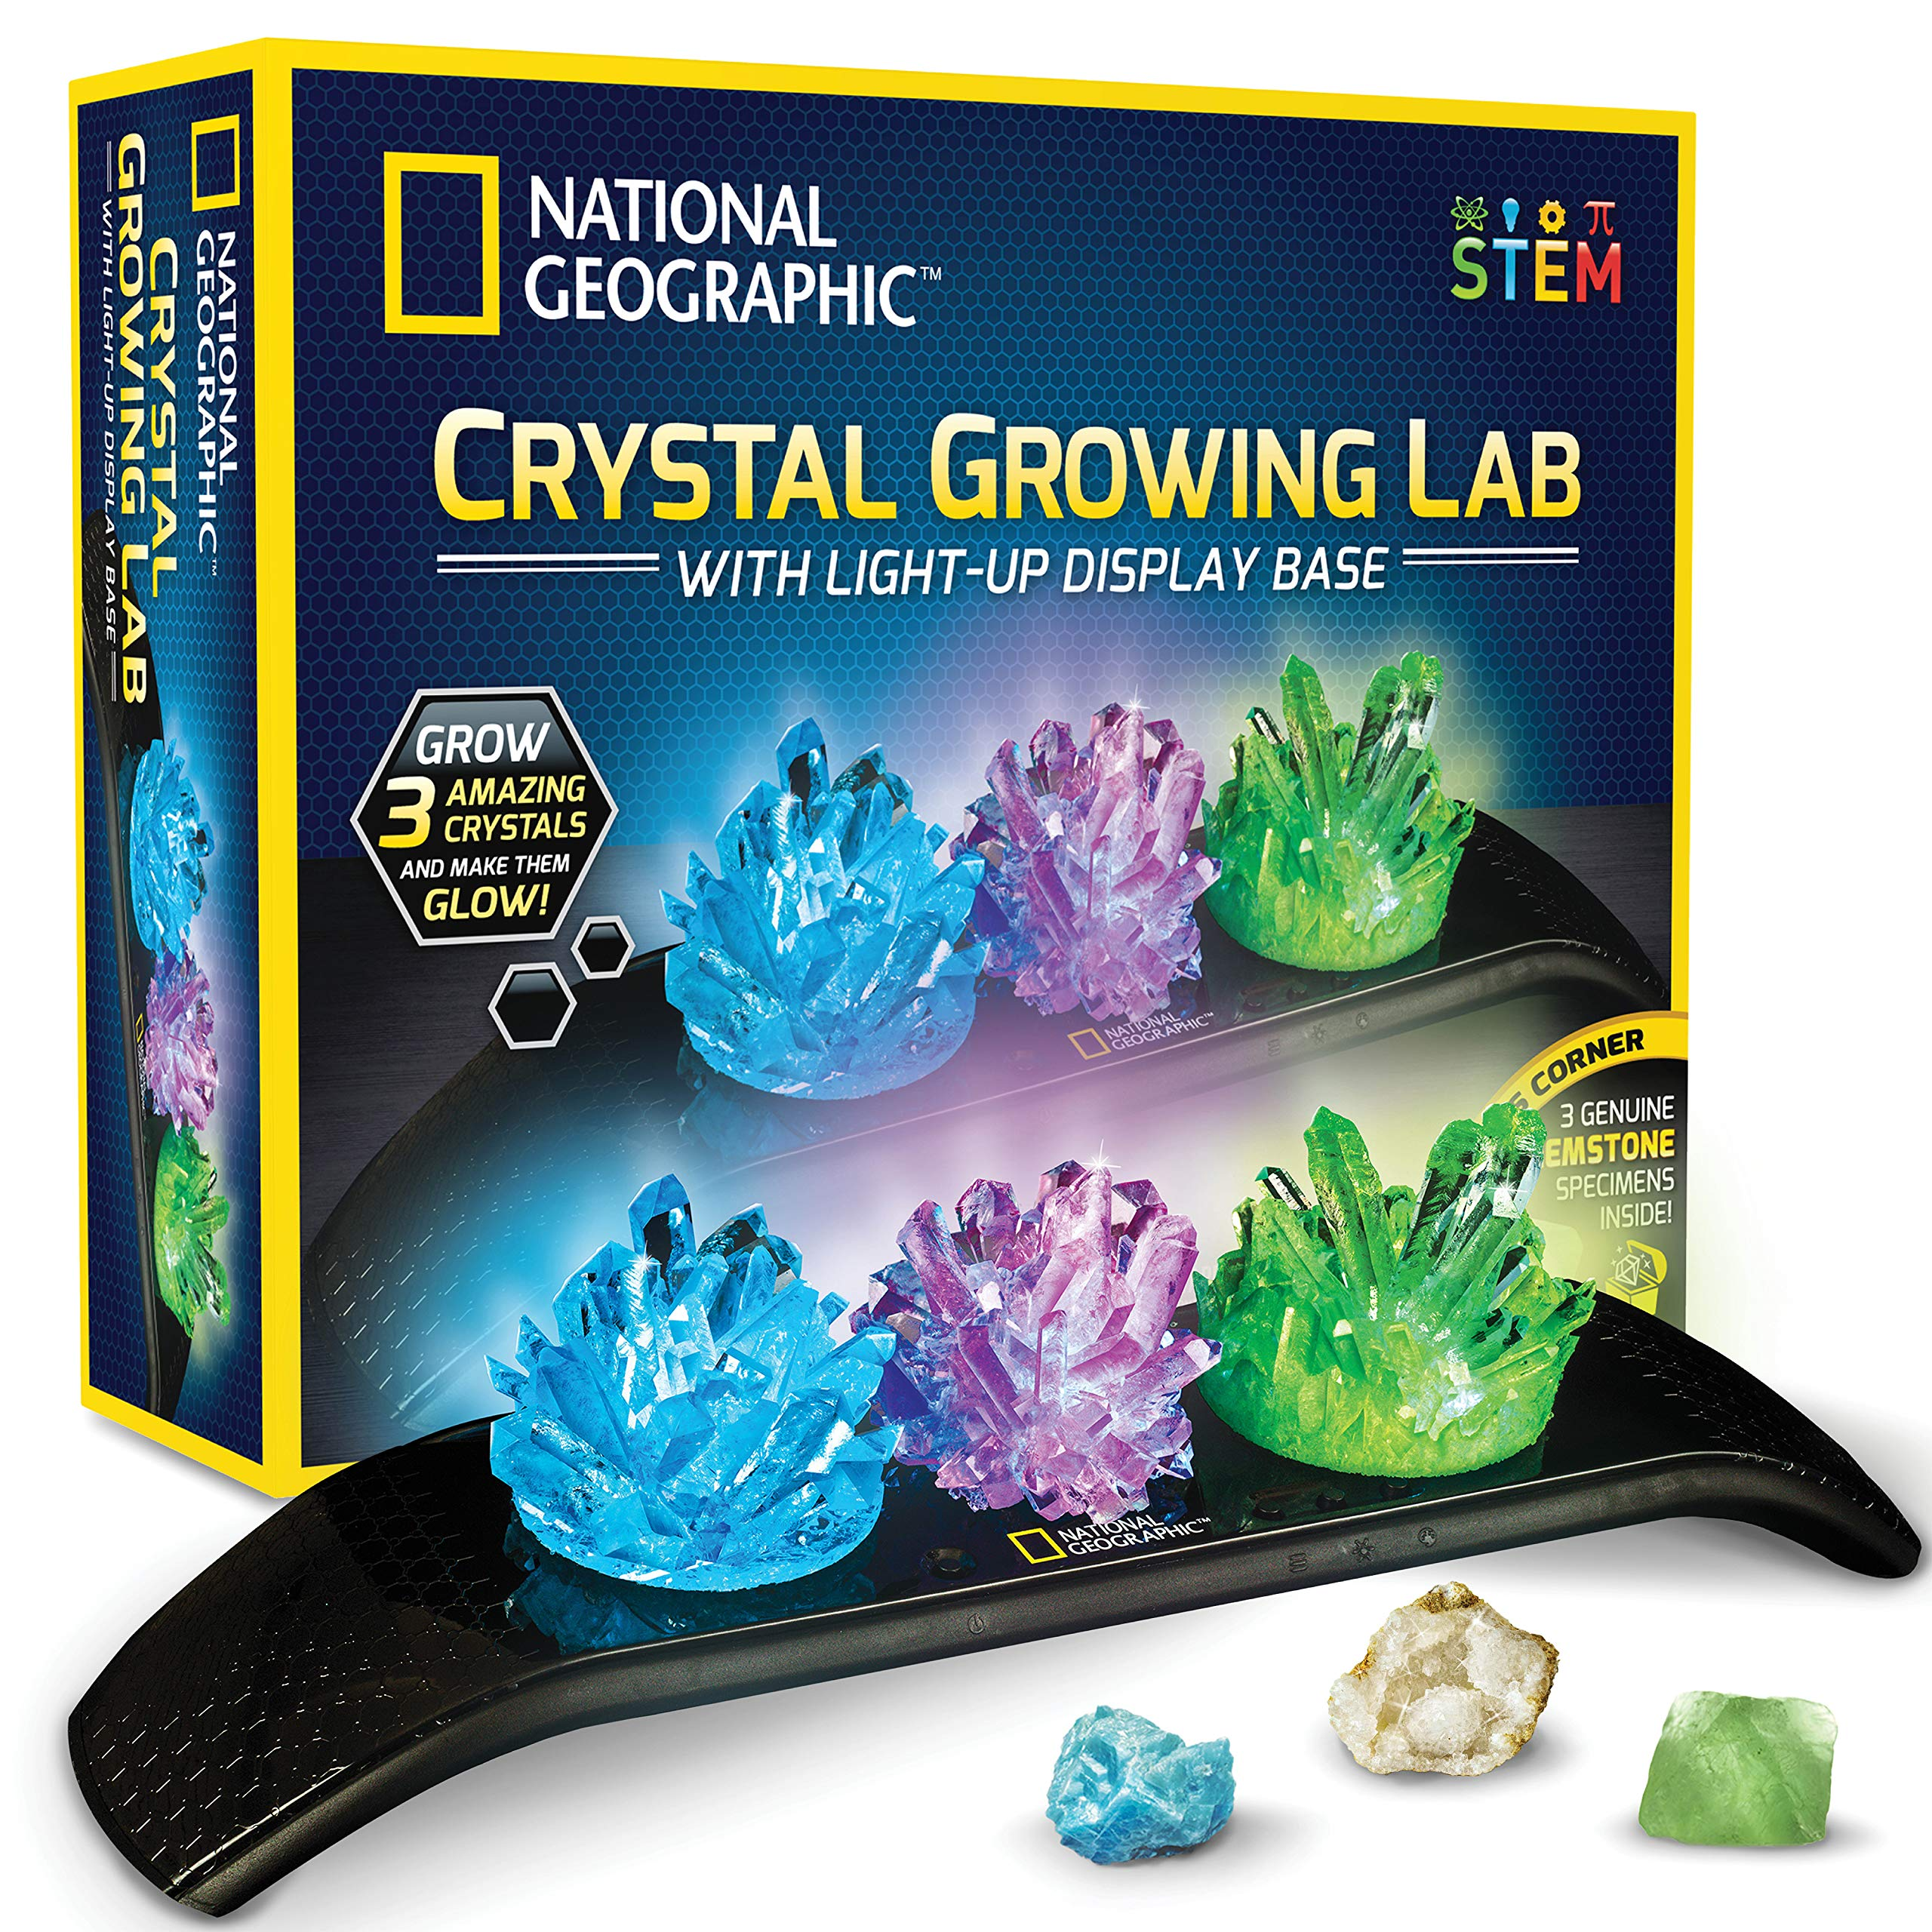 NATIONAL GEOGRAPHIC Crystal Growing Kit - 3 Vibrant Colored Crystals to Grow with Light-Up Display Stand & Guidebook, Includes 3 Real Gemstone Specimens Including A Geode & Green Fluorite